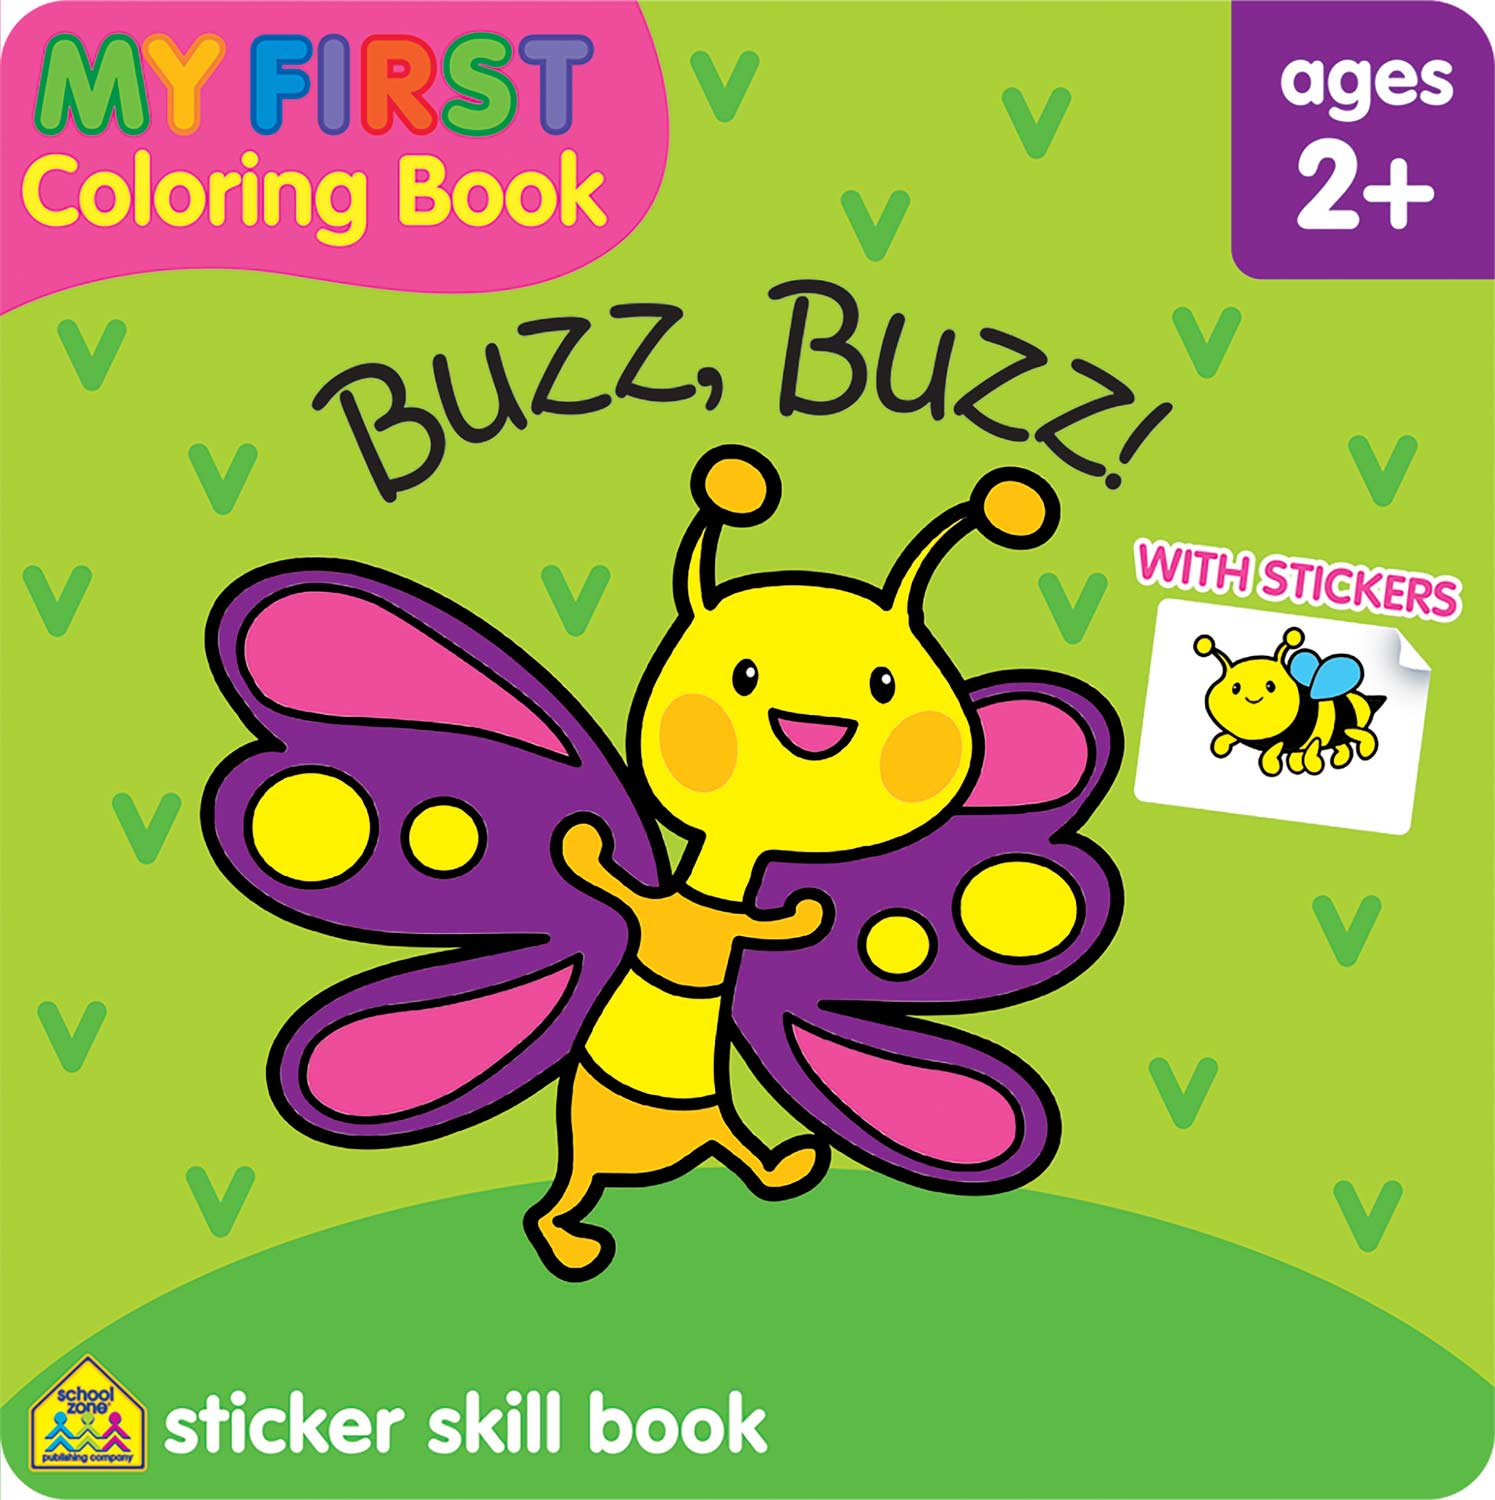 My First Coloring Book Sticker Skill Book - Buzz, Buzz! - Kool & Child